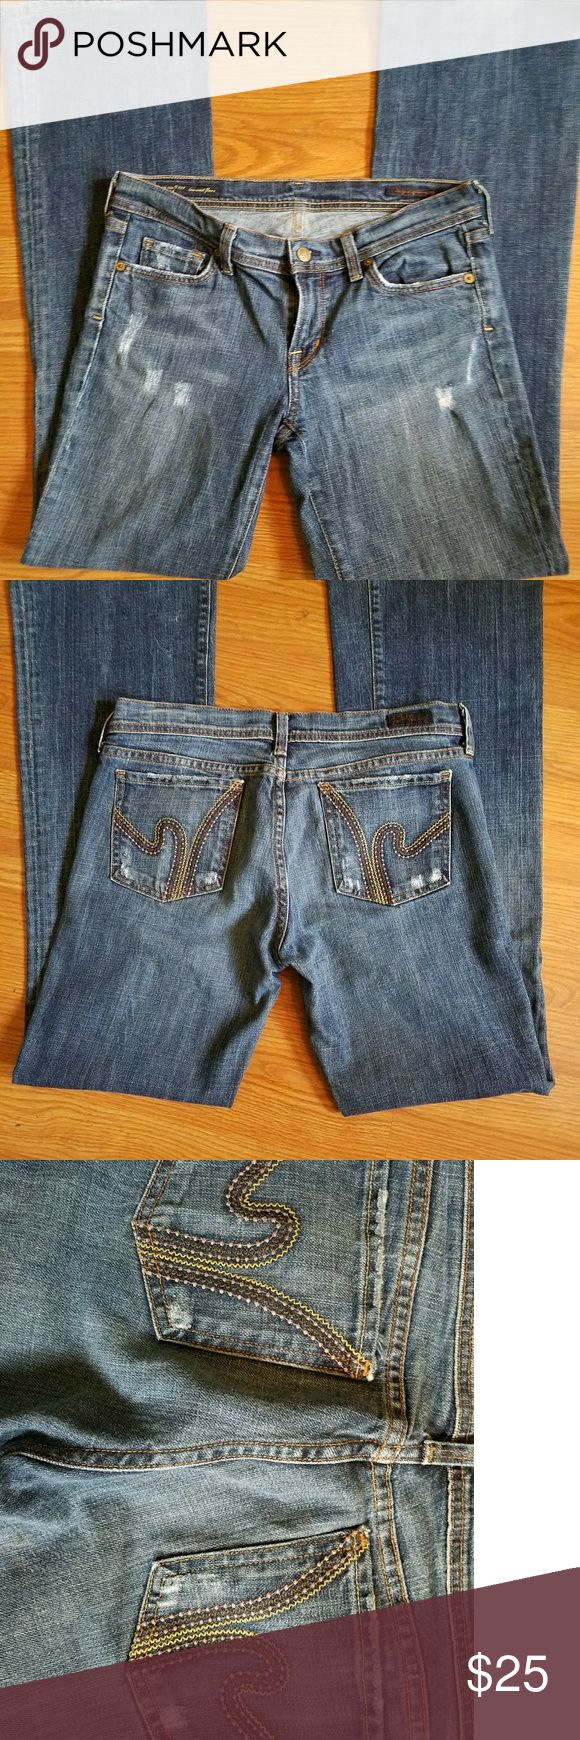 Citizens of humanity women's jeans size 29 Low waist flare ric rac #109 29 waist 32 inseam Citizens Of Humanity Jeans Flare & Wide Leg